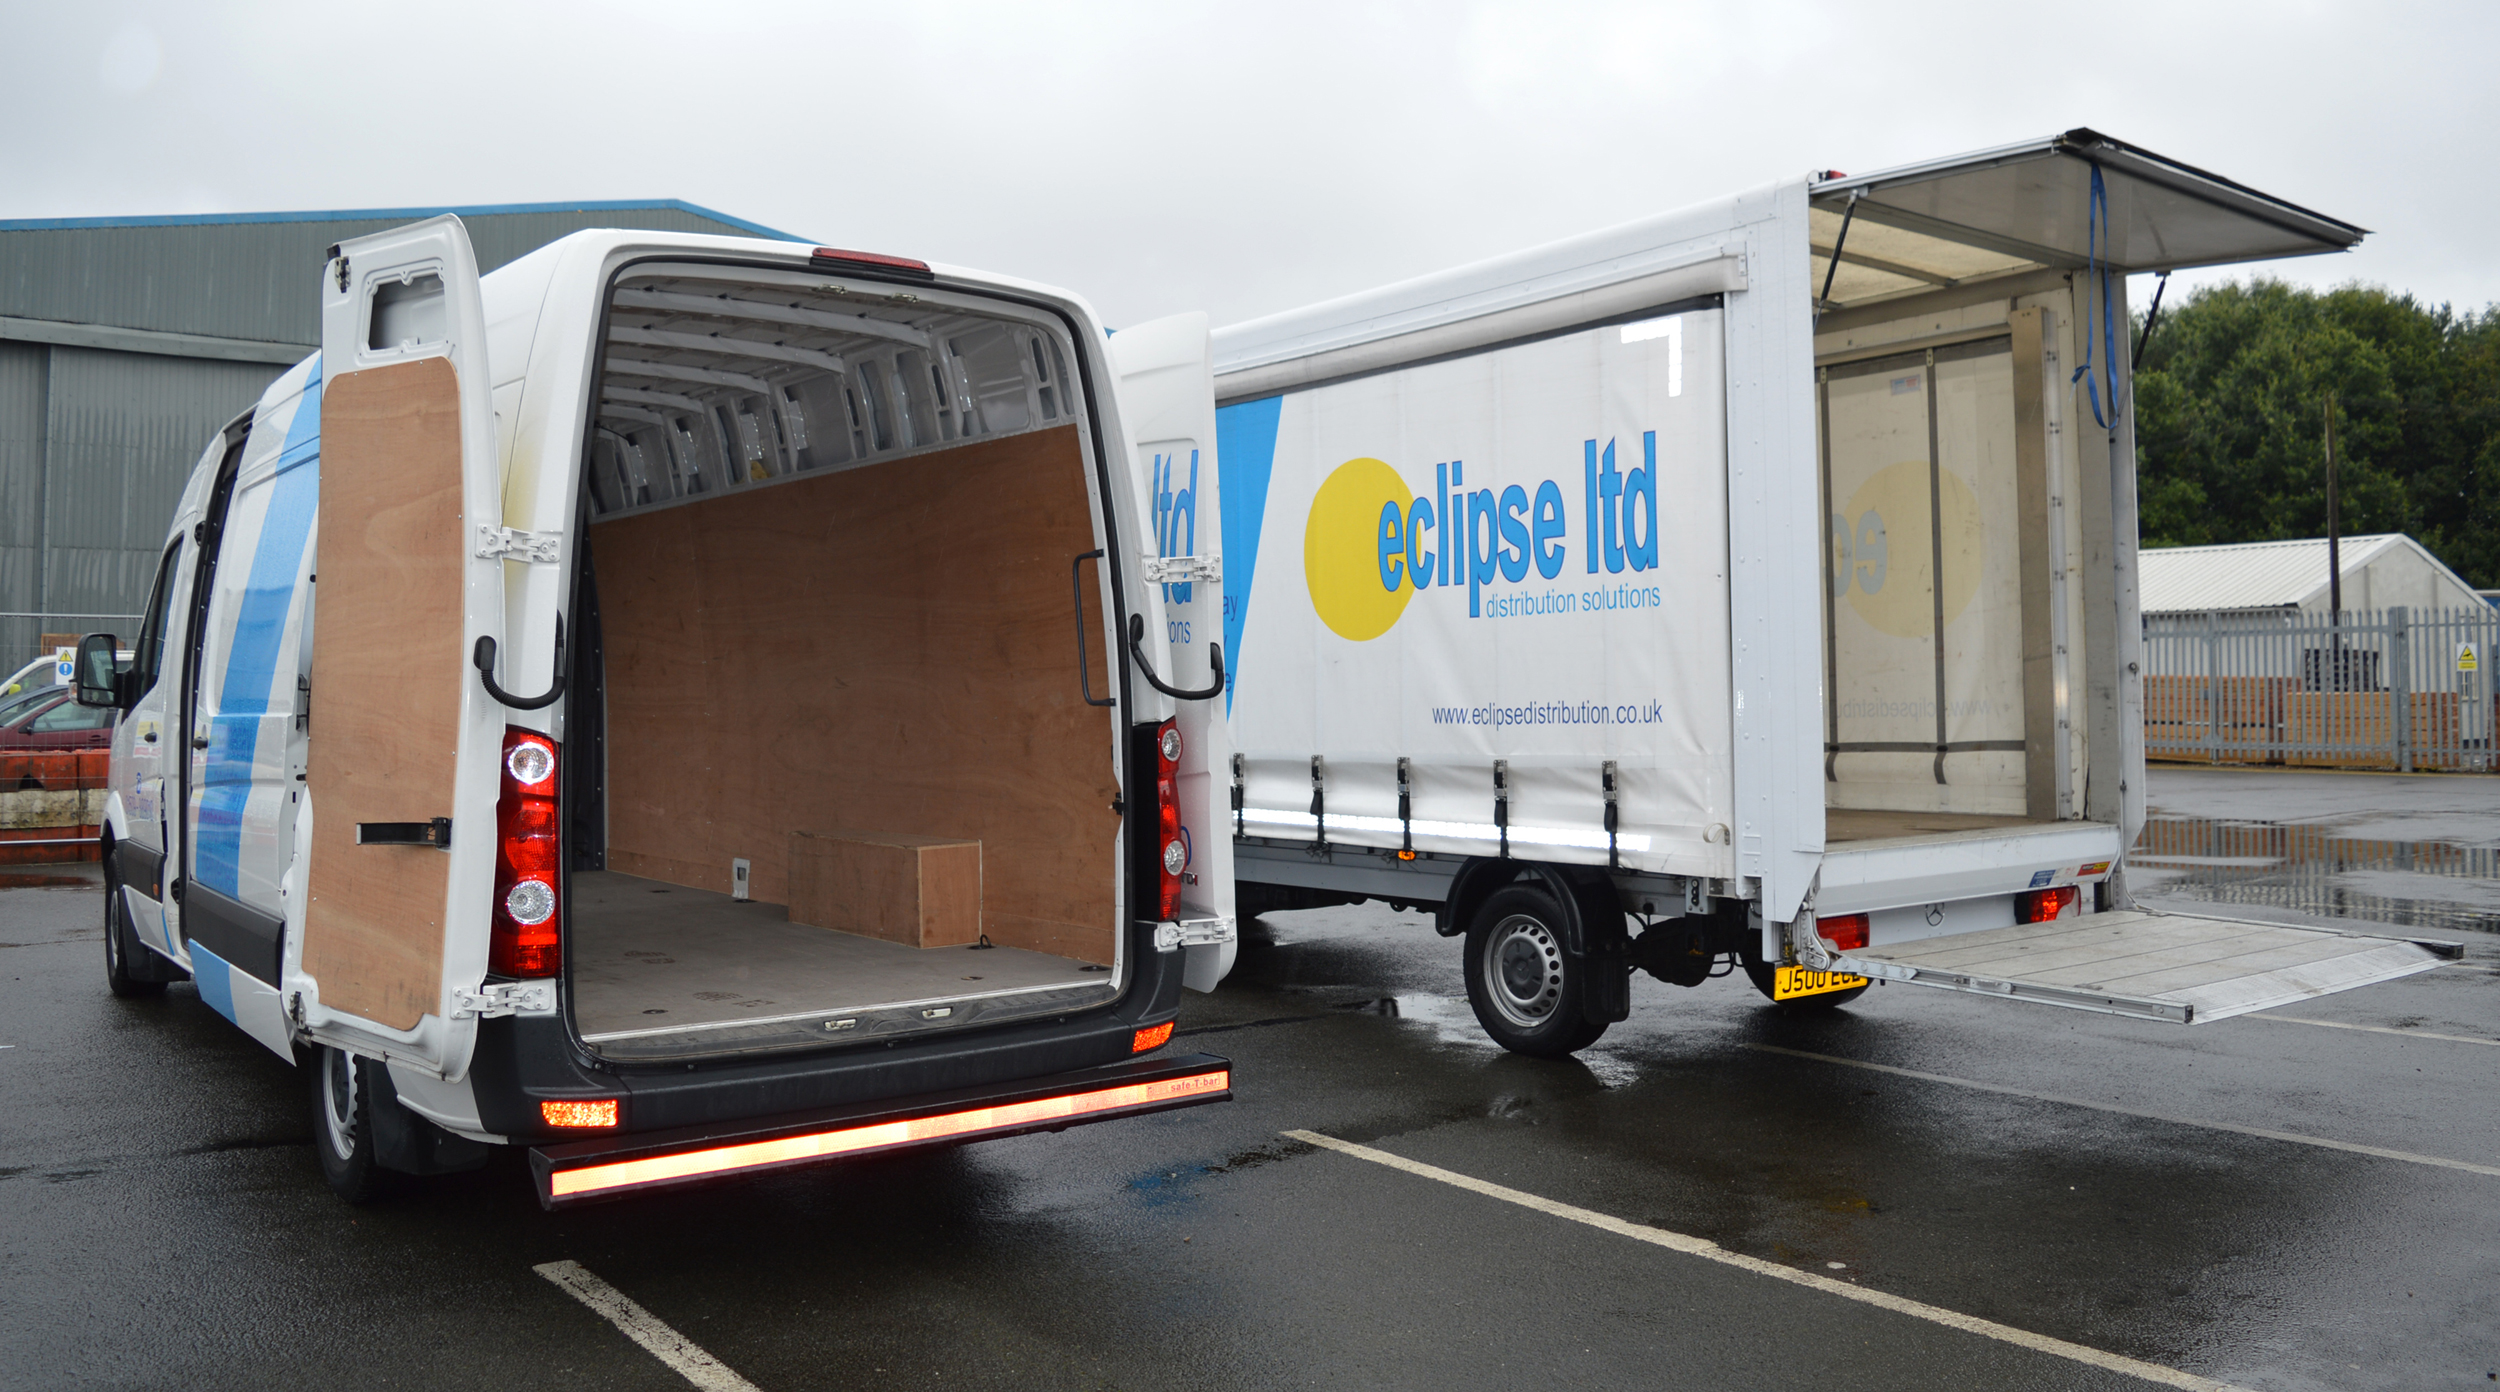 An image showing the rear view of two Eclipse Distribution Solutions vans with open doors.